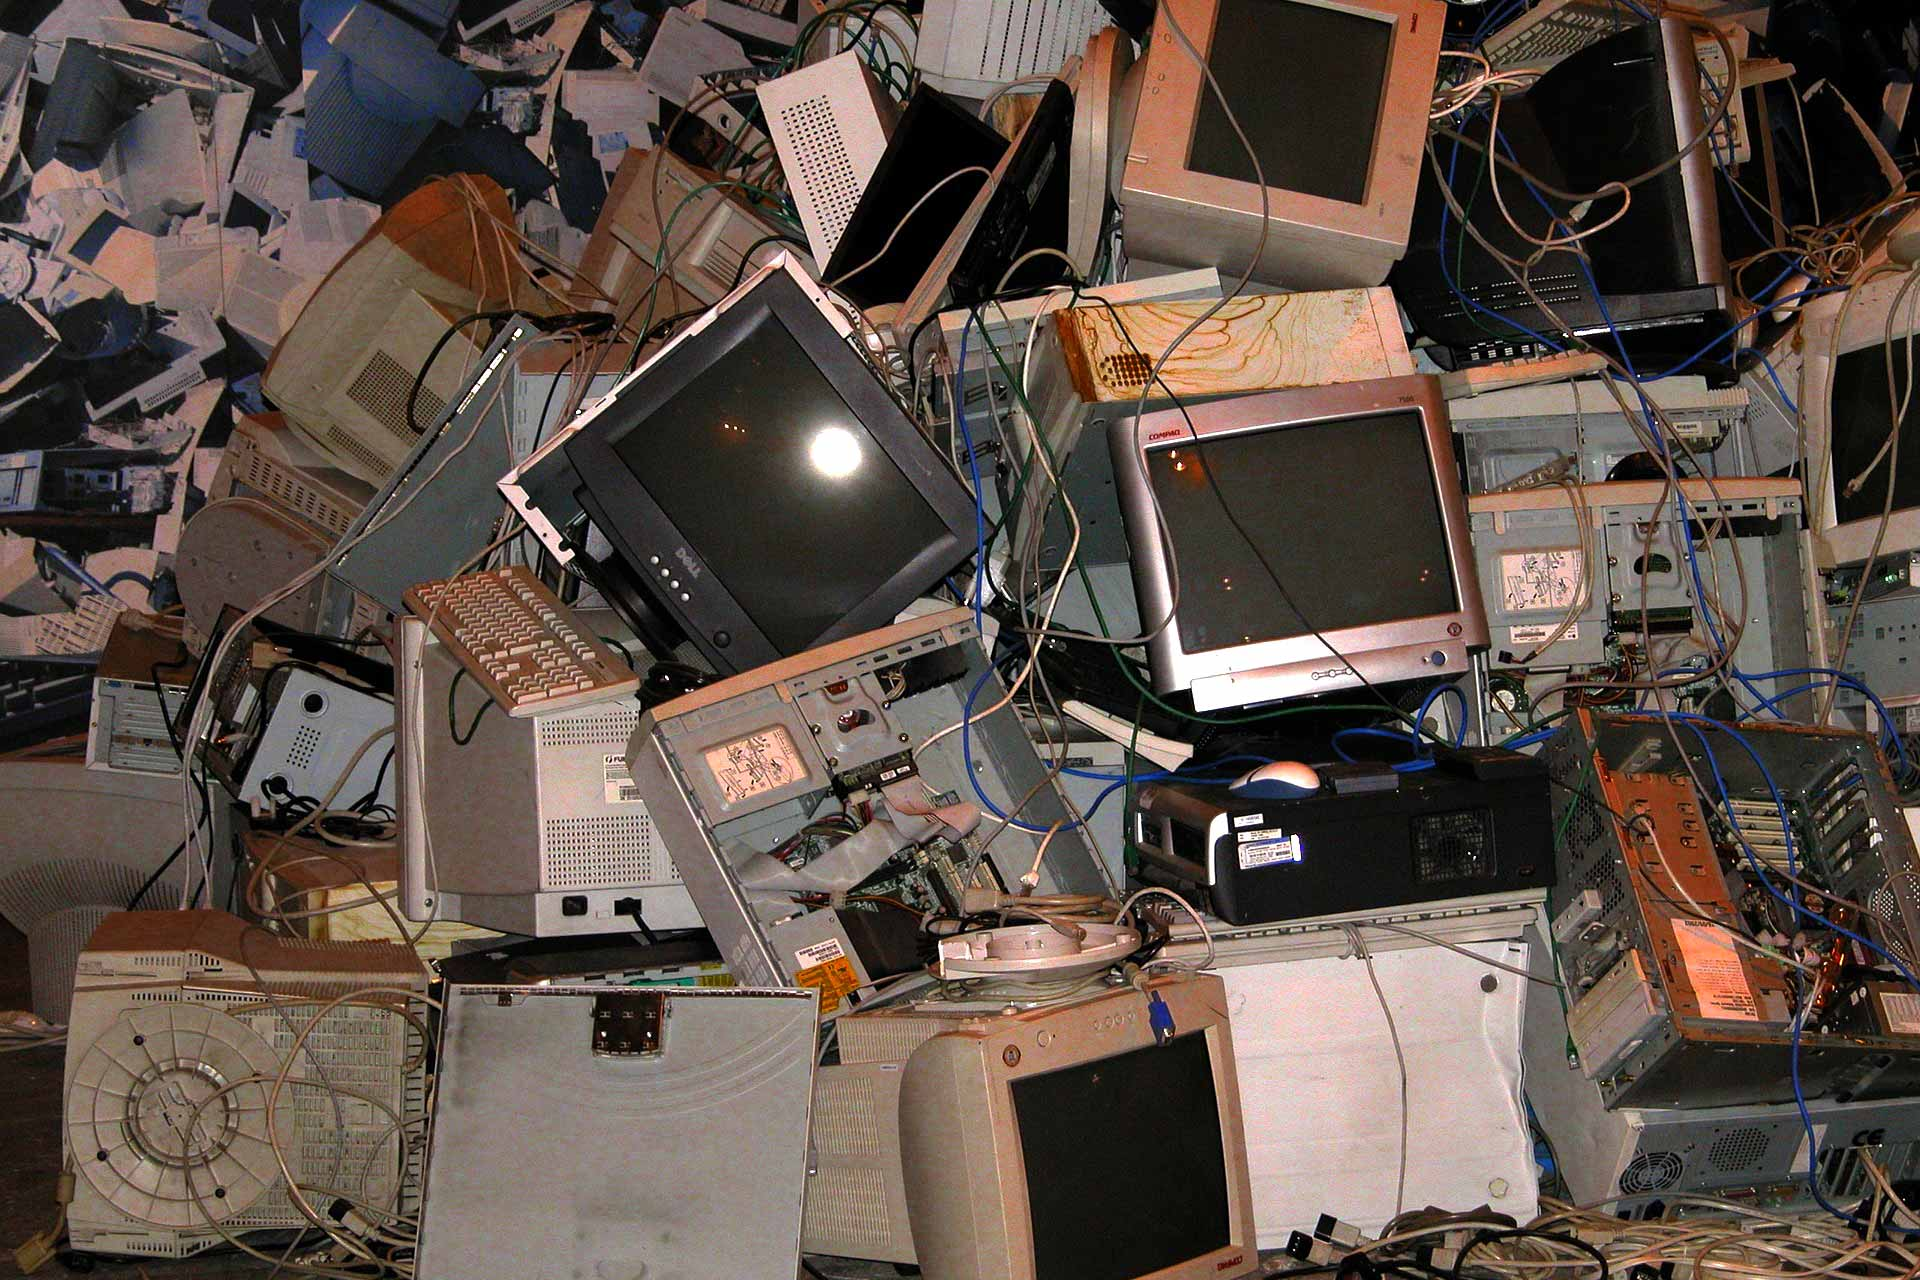 E-waste-Electronic-Waste recycling